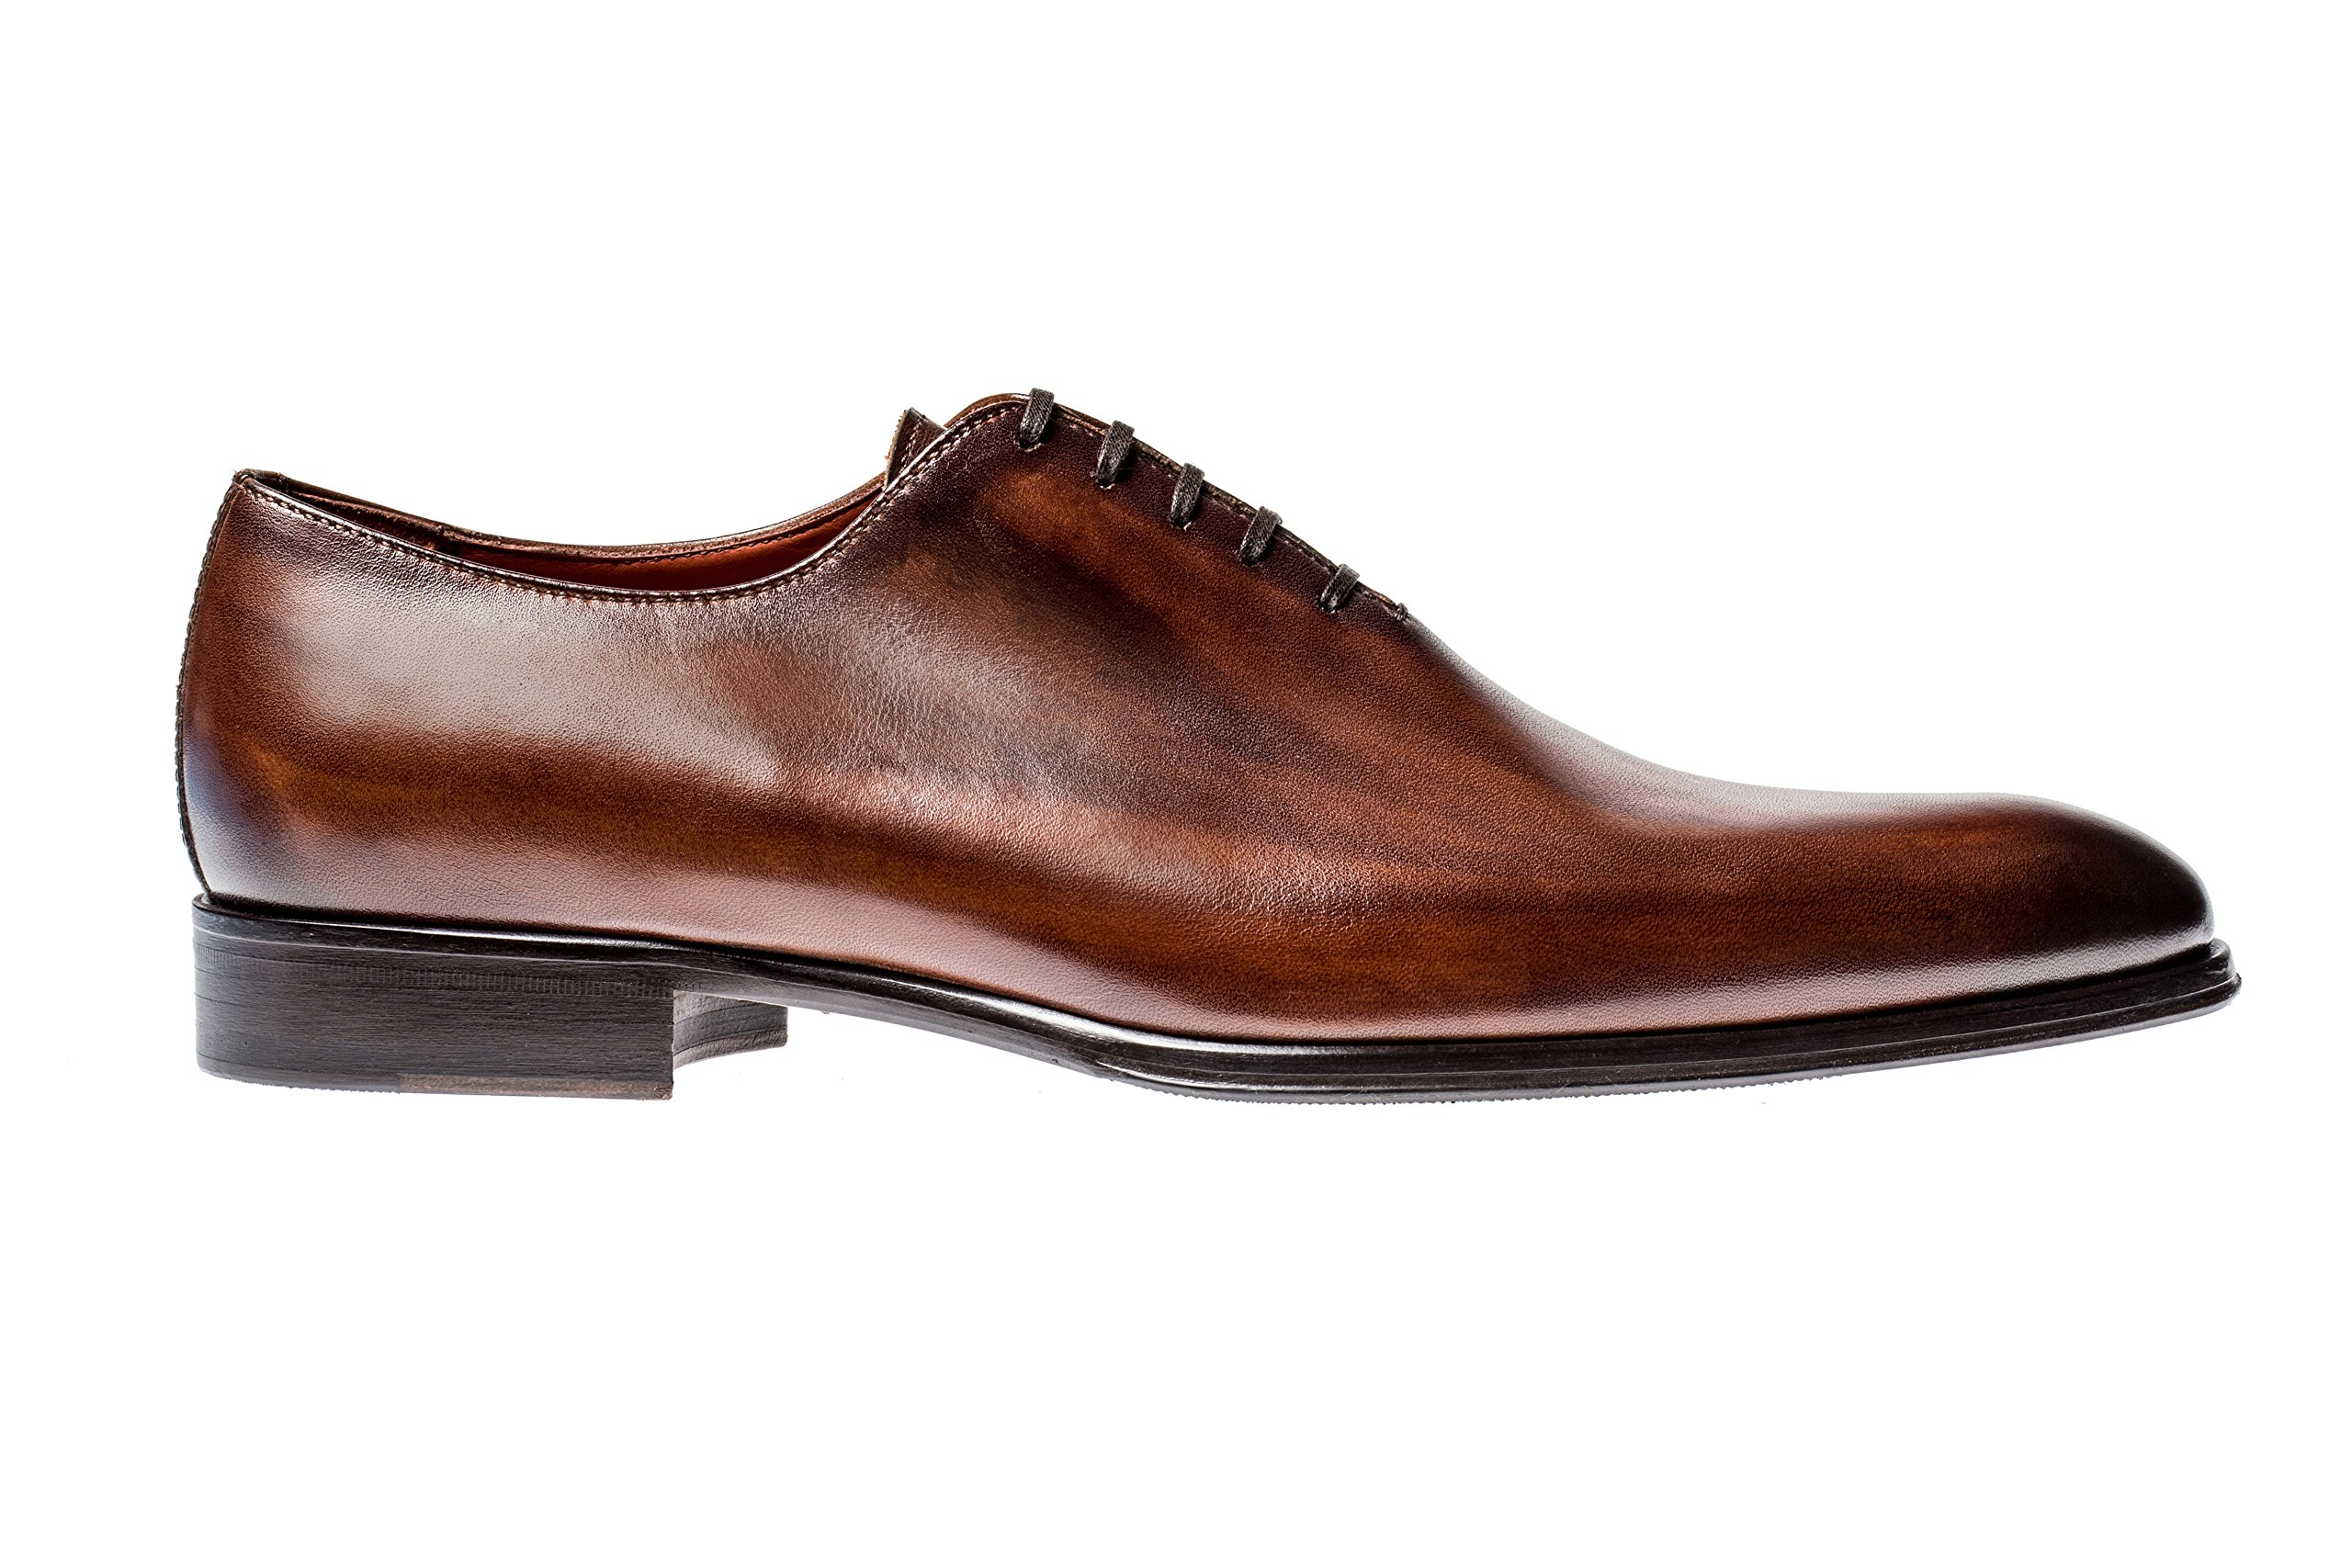 Jose Real Shoes Basoto Collection | slavato Cuoio | Mens Oxford Brown Genuine Real Italian Baby Calf Leather Dress Shoe | Size EU 42